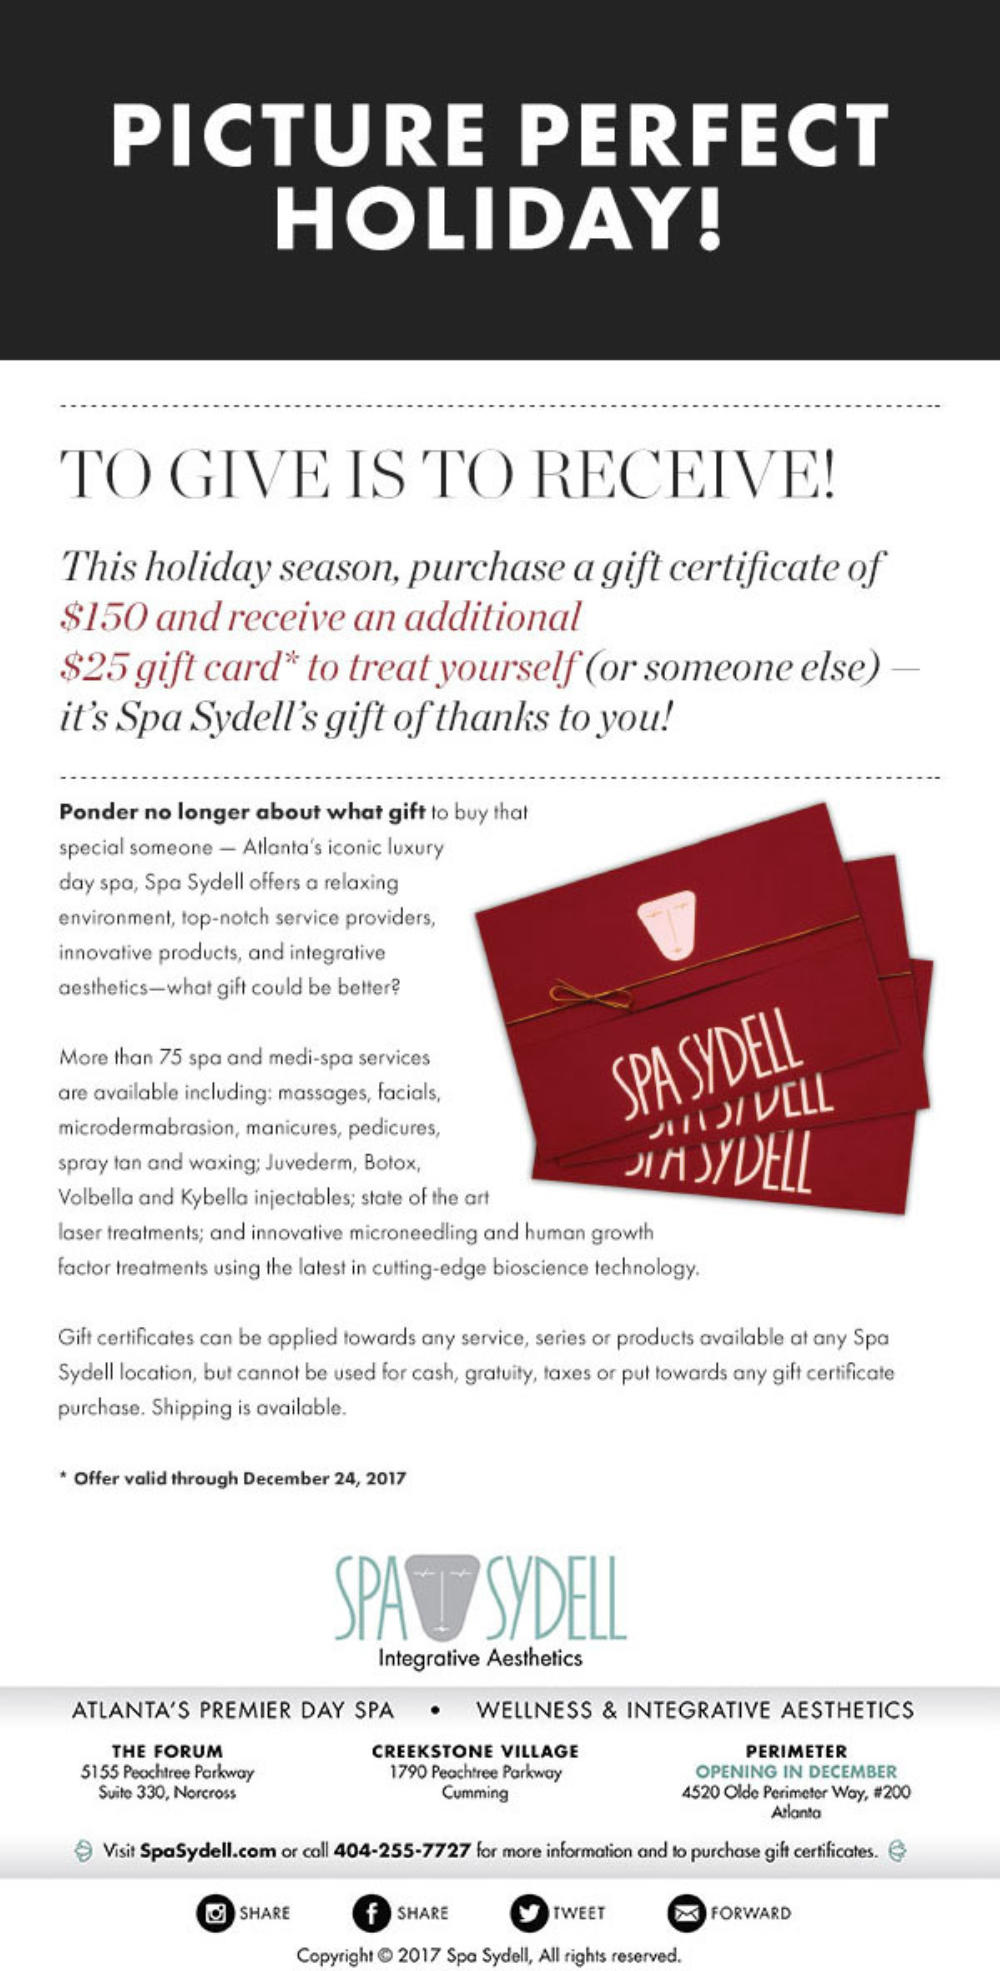 A Special Holiday Offer from Spa Sydell